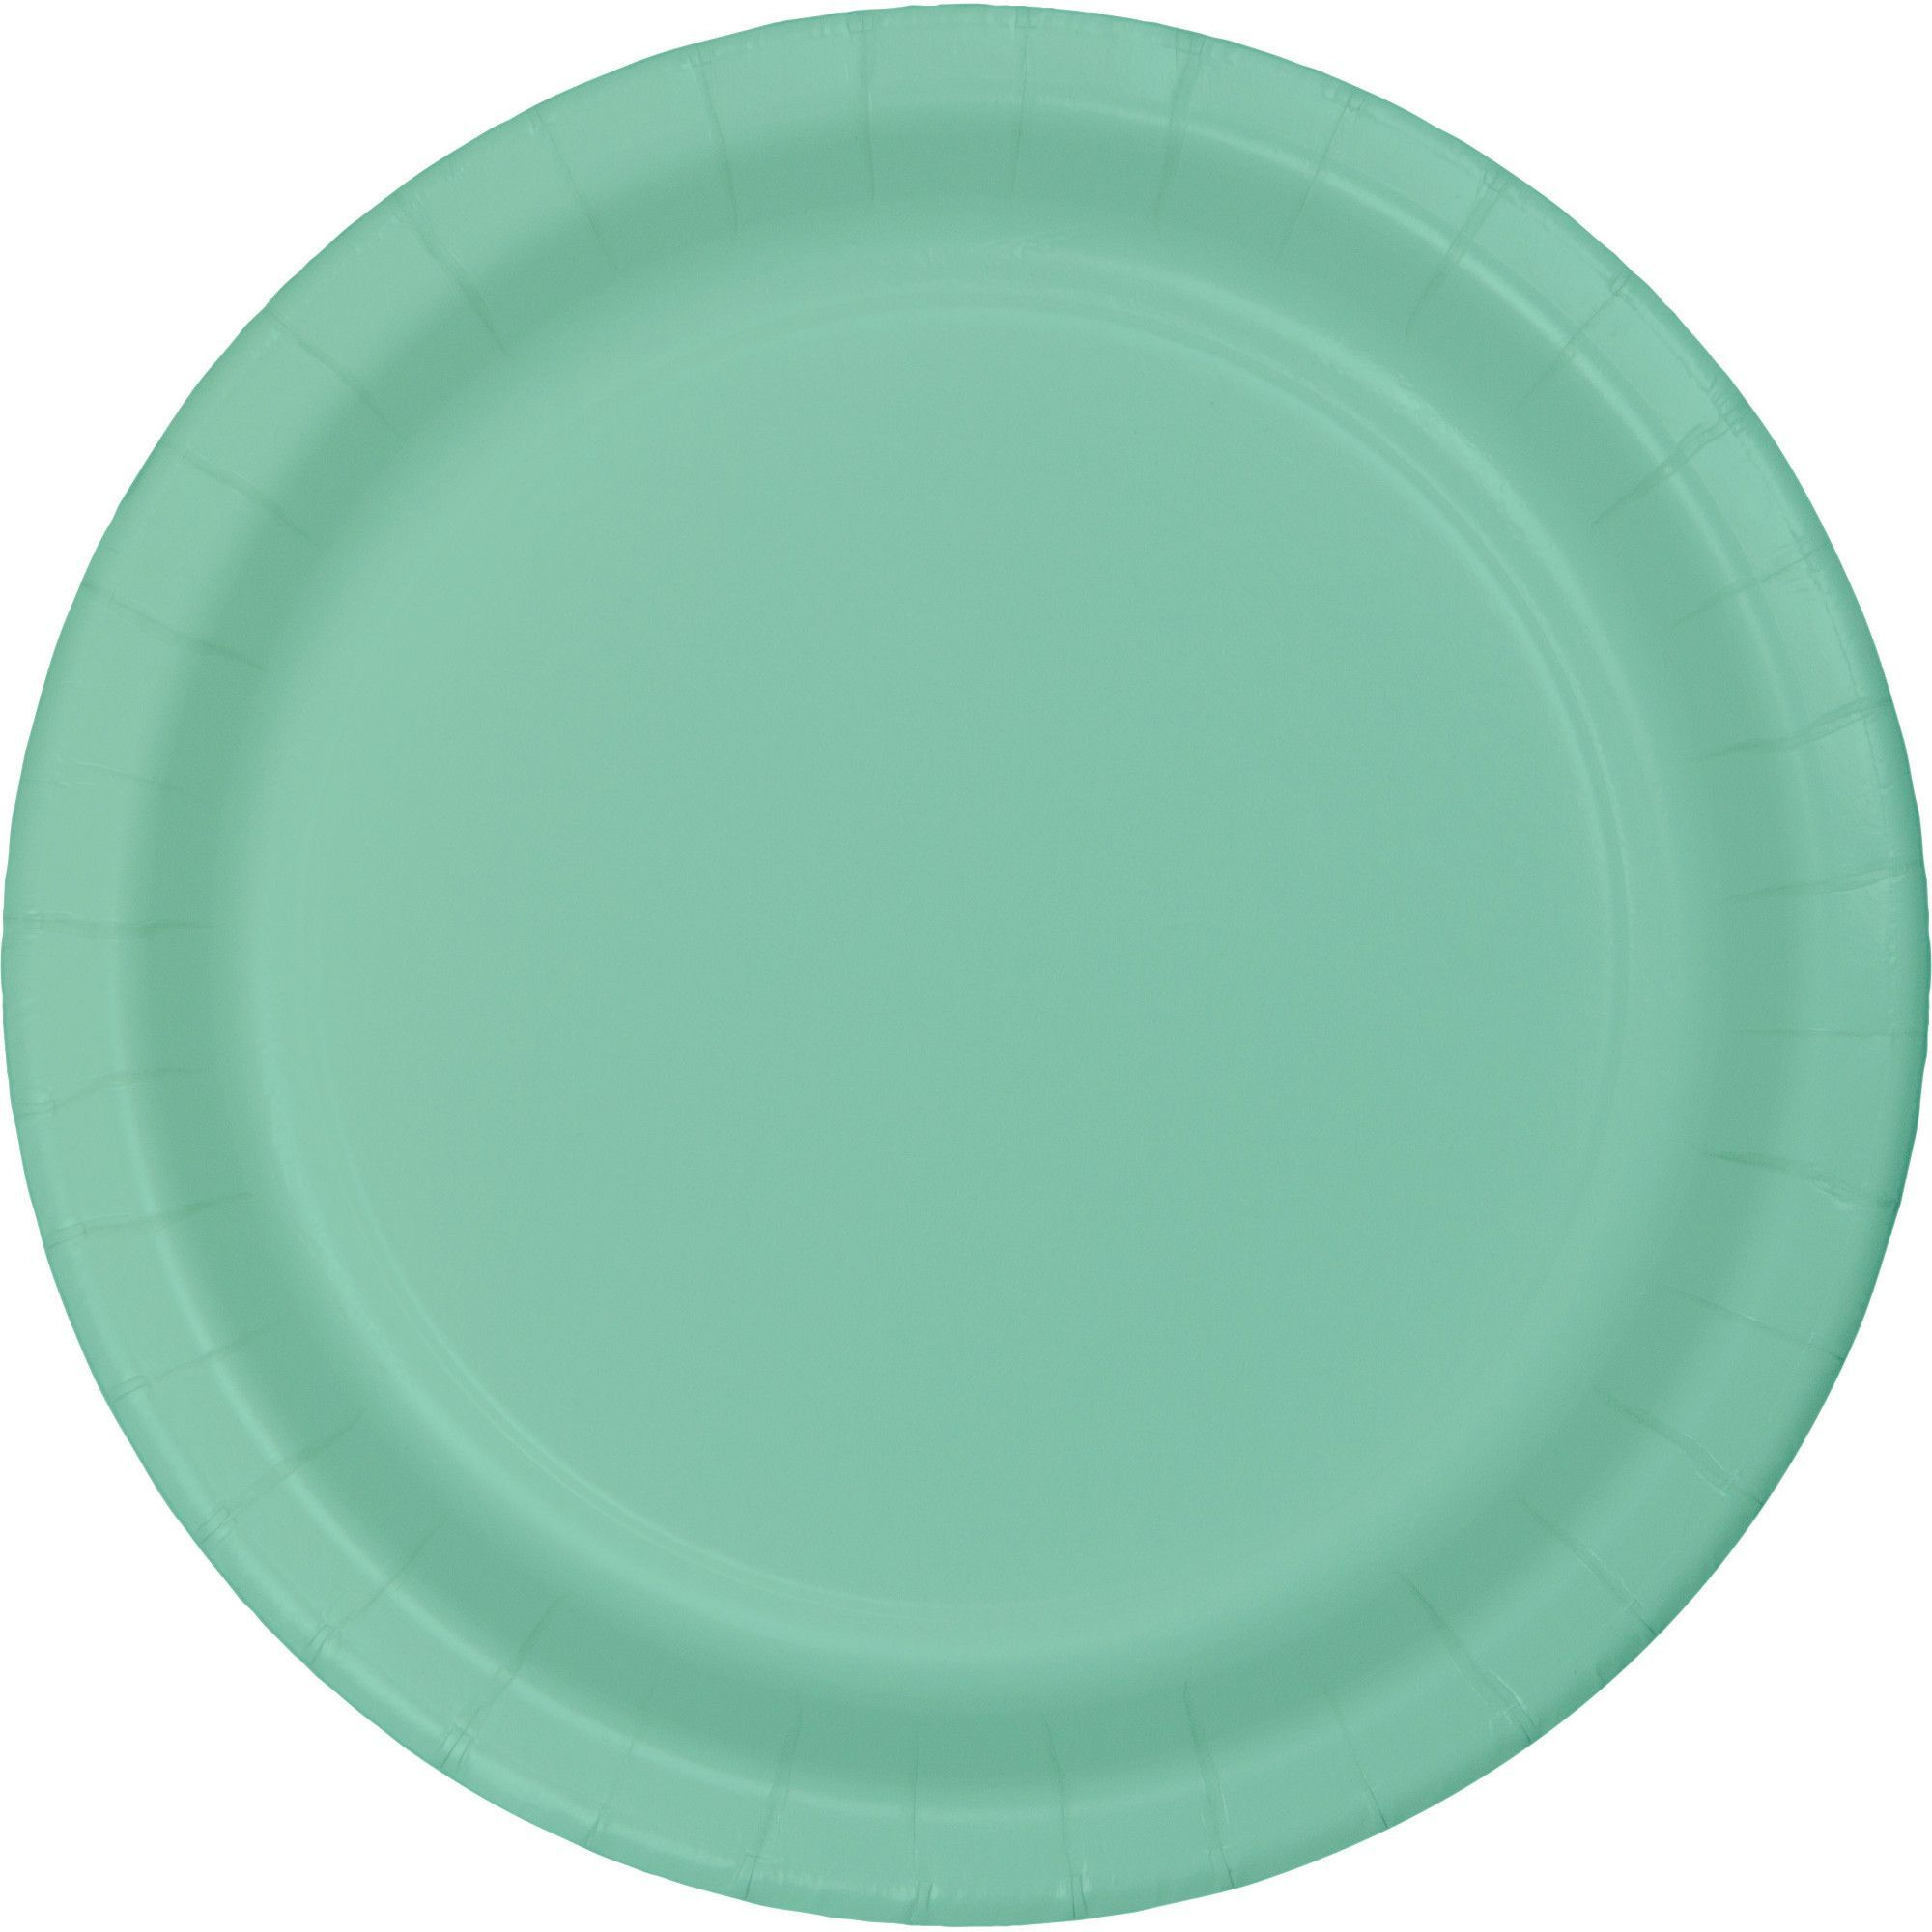 Fresh Mint 10 Inch Banquet Plate/Case of 240